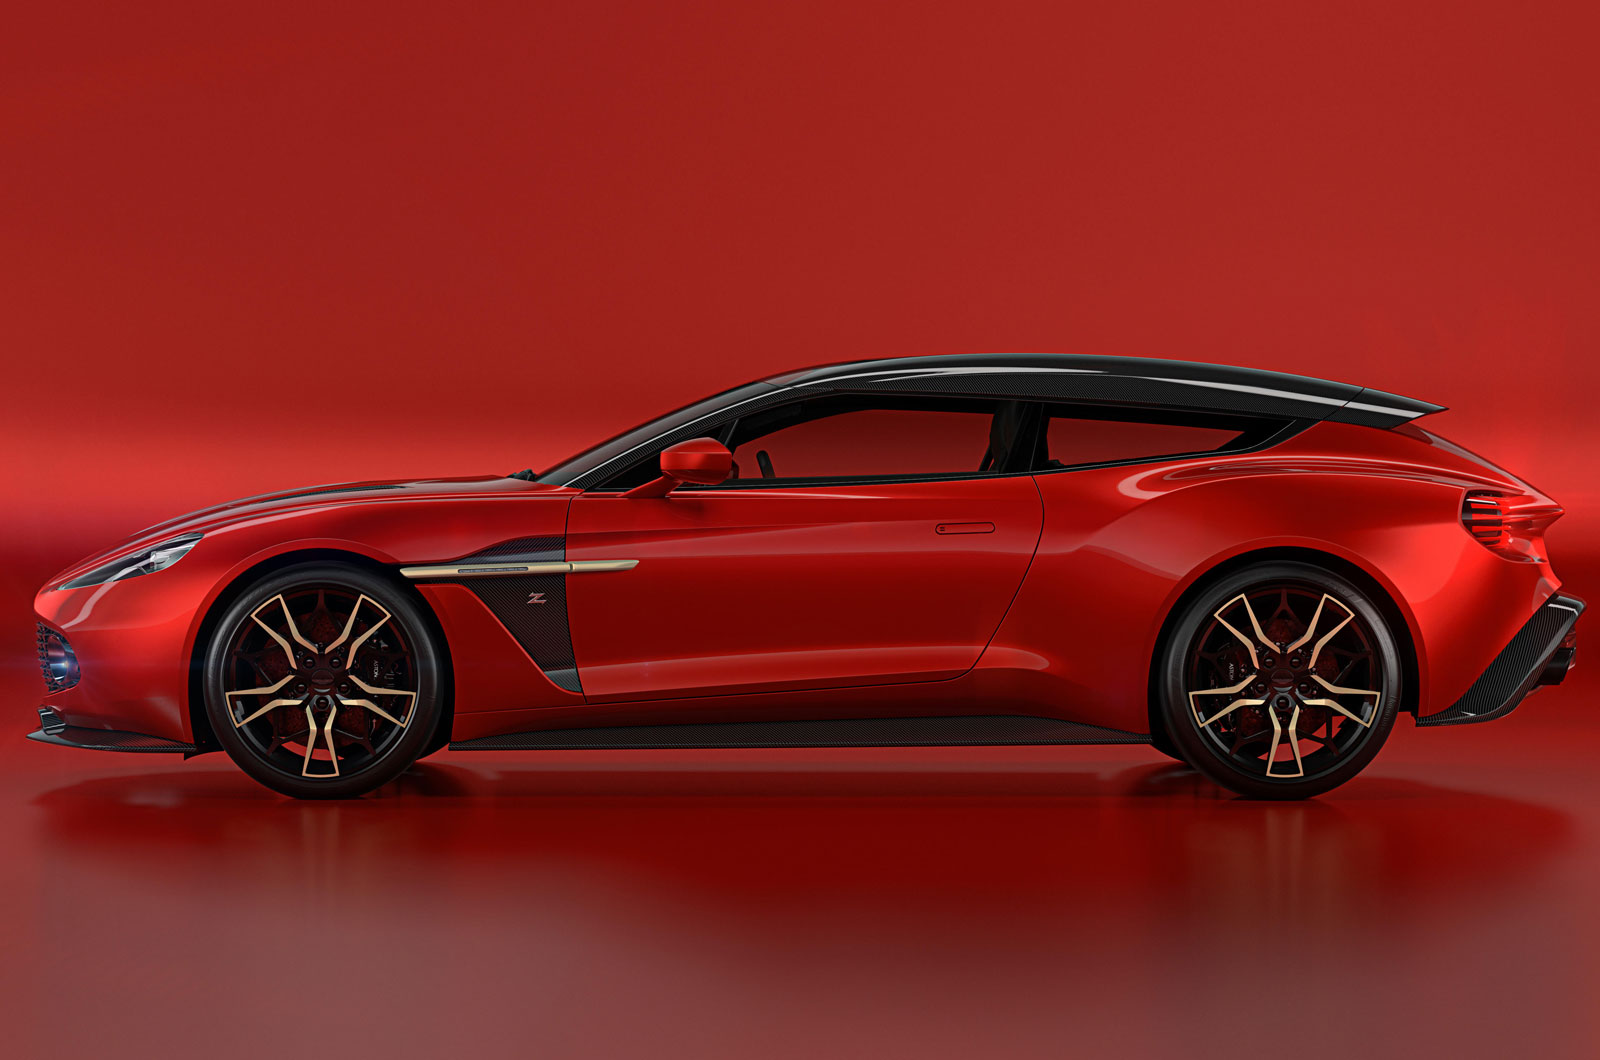 Aston Martin Vanquish Zagato Shooting Brake Styling Shown In Life Size Model Autocar